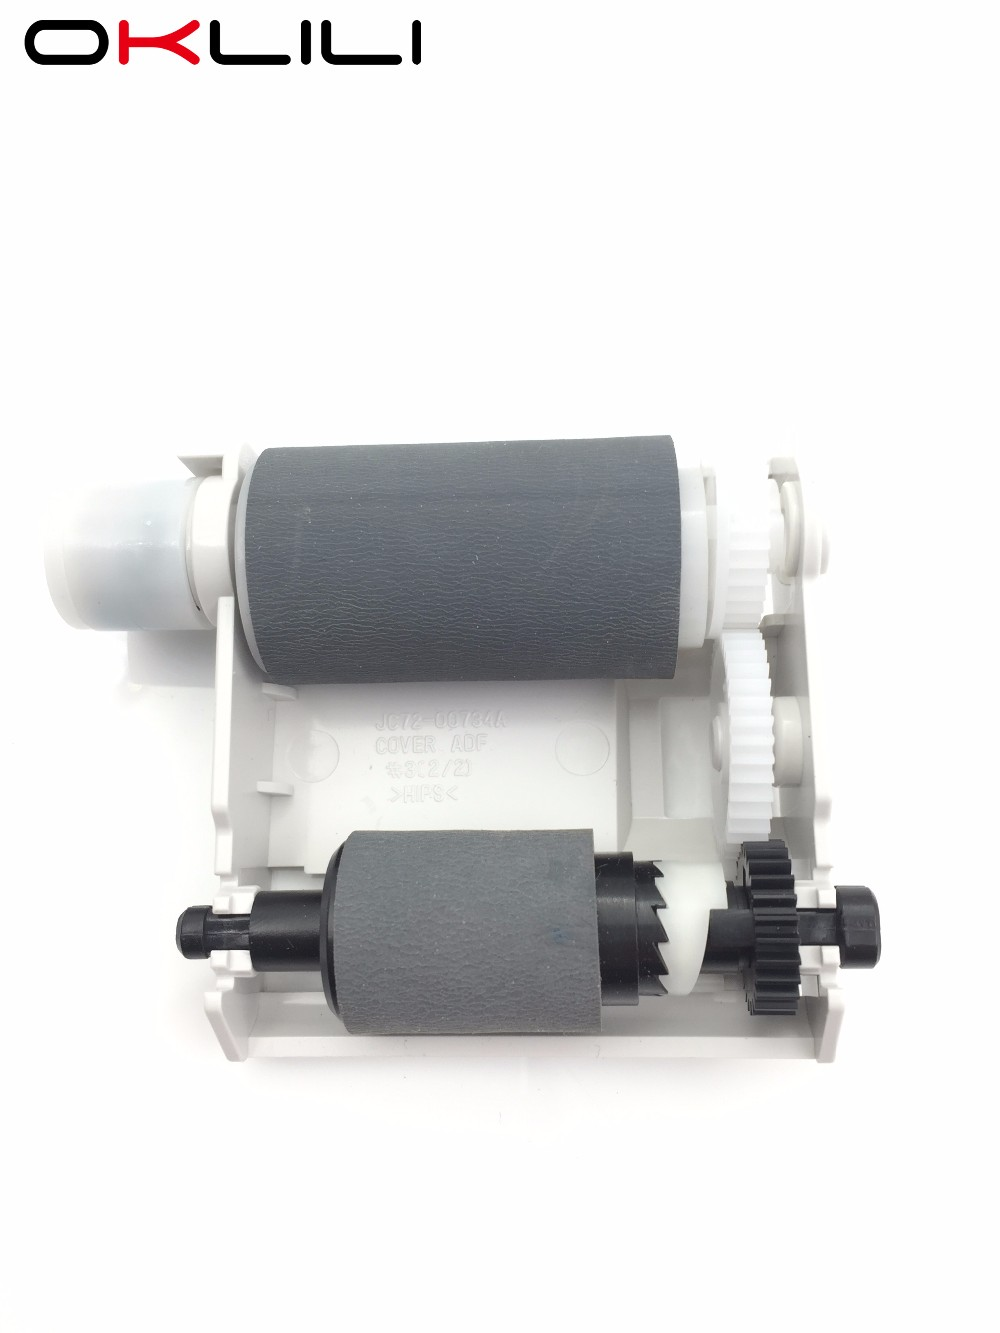 ORIGINAL NEW JC97-02203A JC97-01962A ADF Pickup Roller for Samsung CLX3160 6200 SCX4321 SCX4521 SCX4725 4720 4824 4826 4828 5330 10x pickup roller for xerox 3115 3116 3119 3121 for samsung ml 1500 1510 1520 1710 1710p 1740 1750